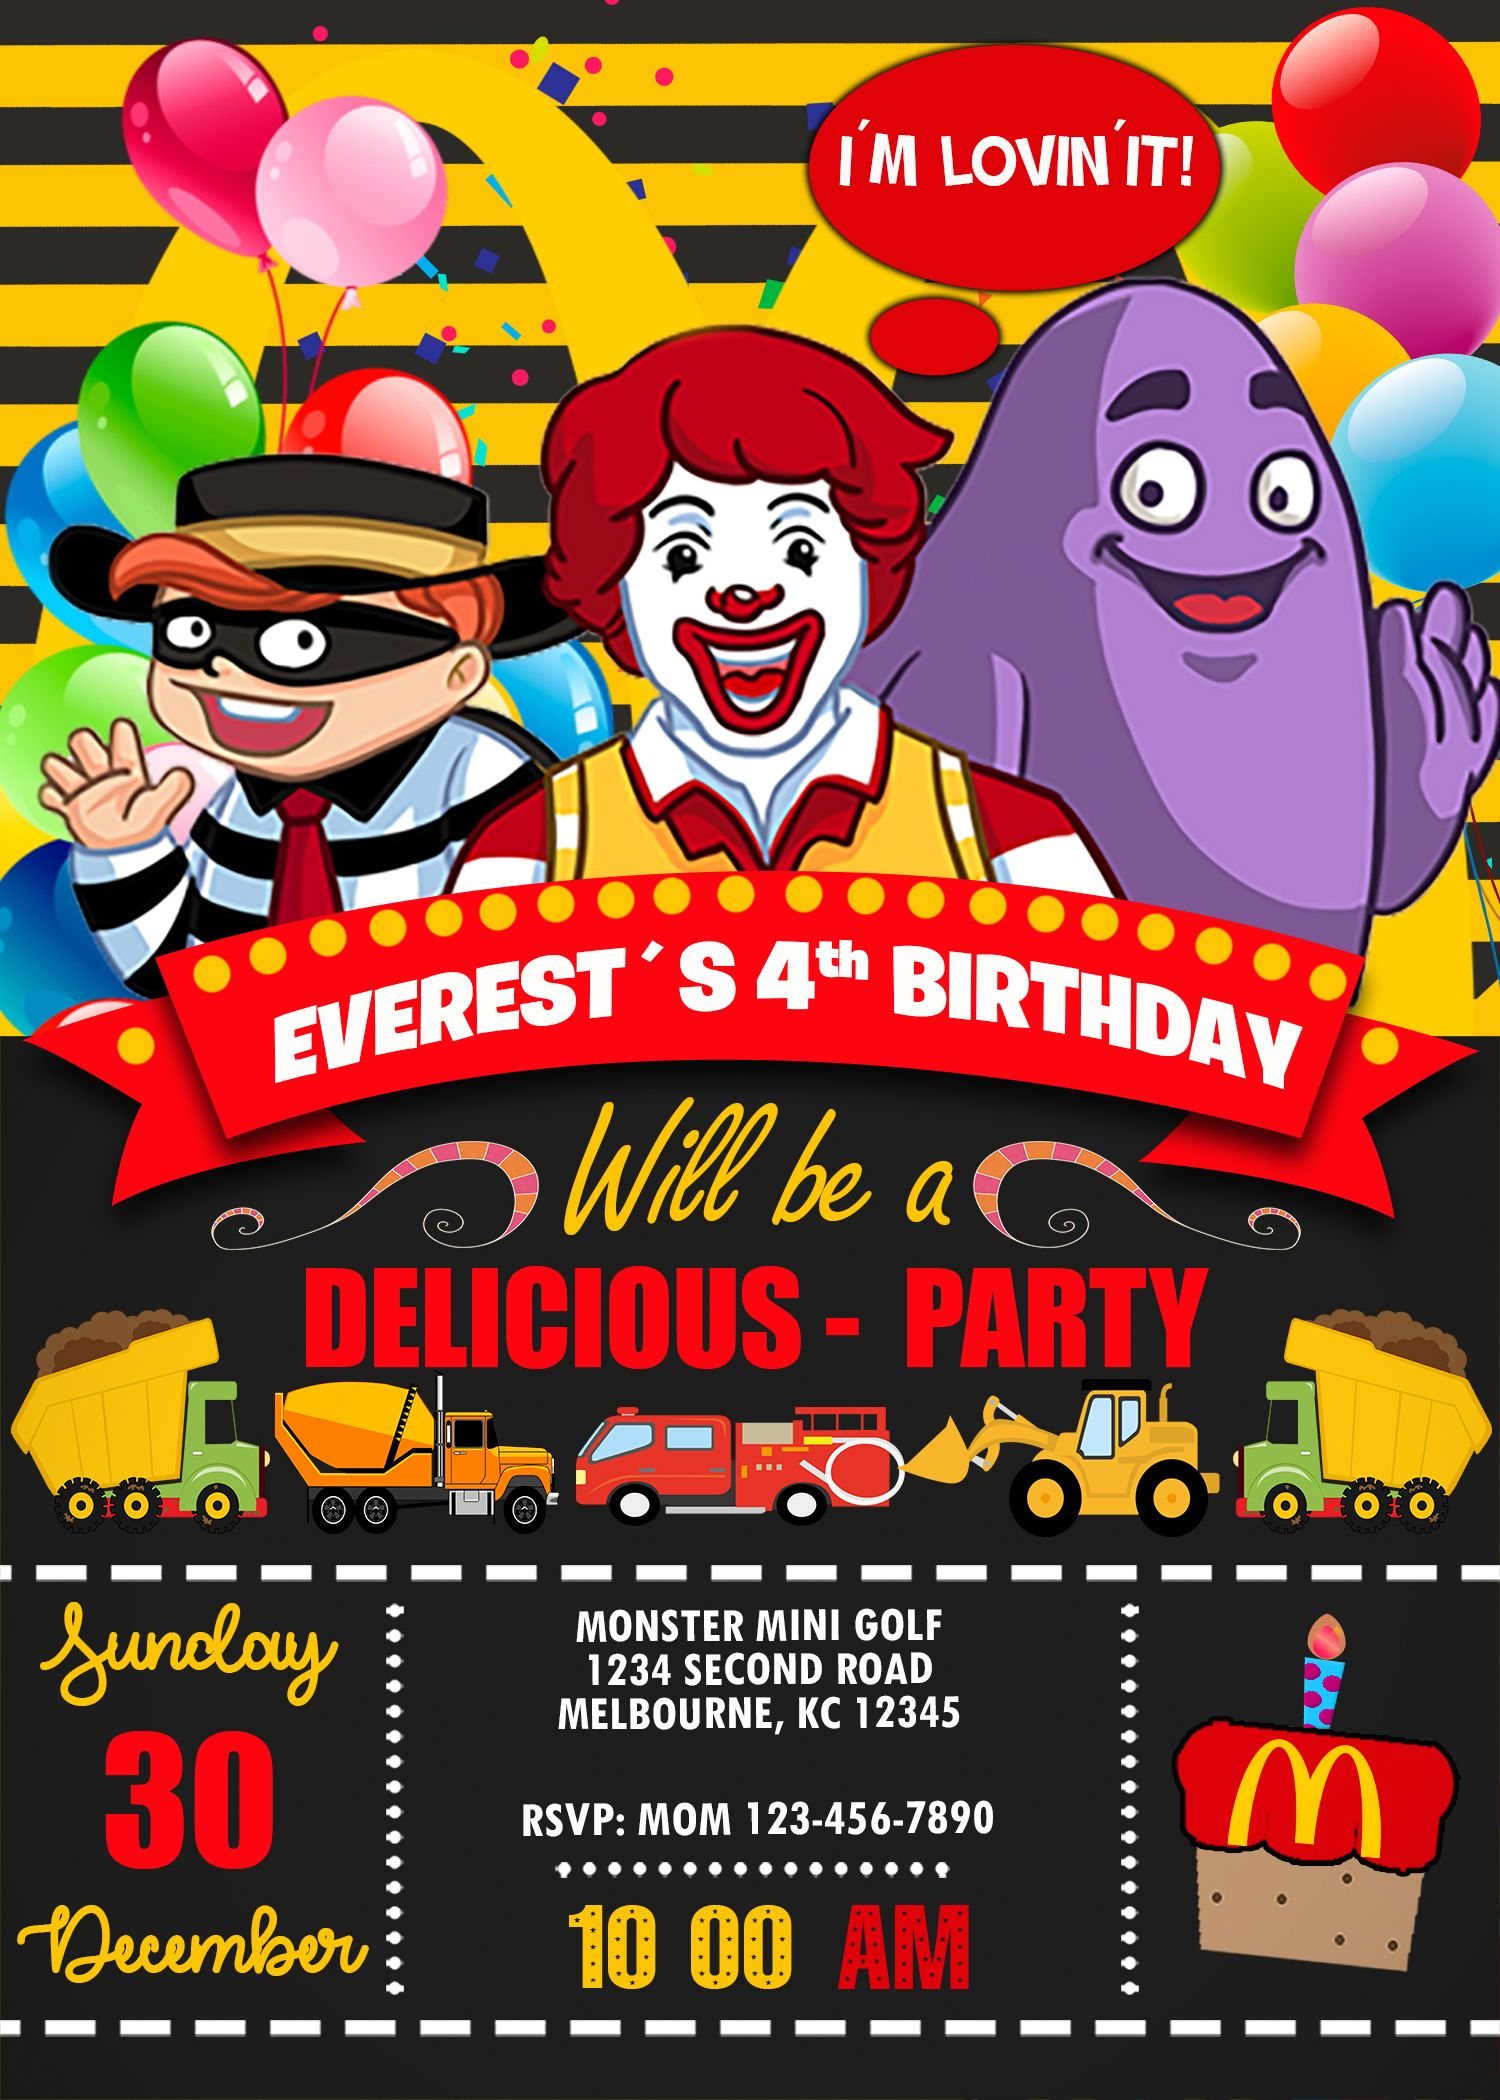 Ronald McDonalds Birthday Invitation - oscarsitosroom  Mcdonalds